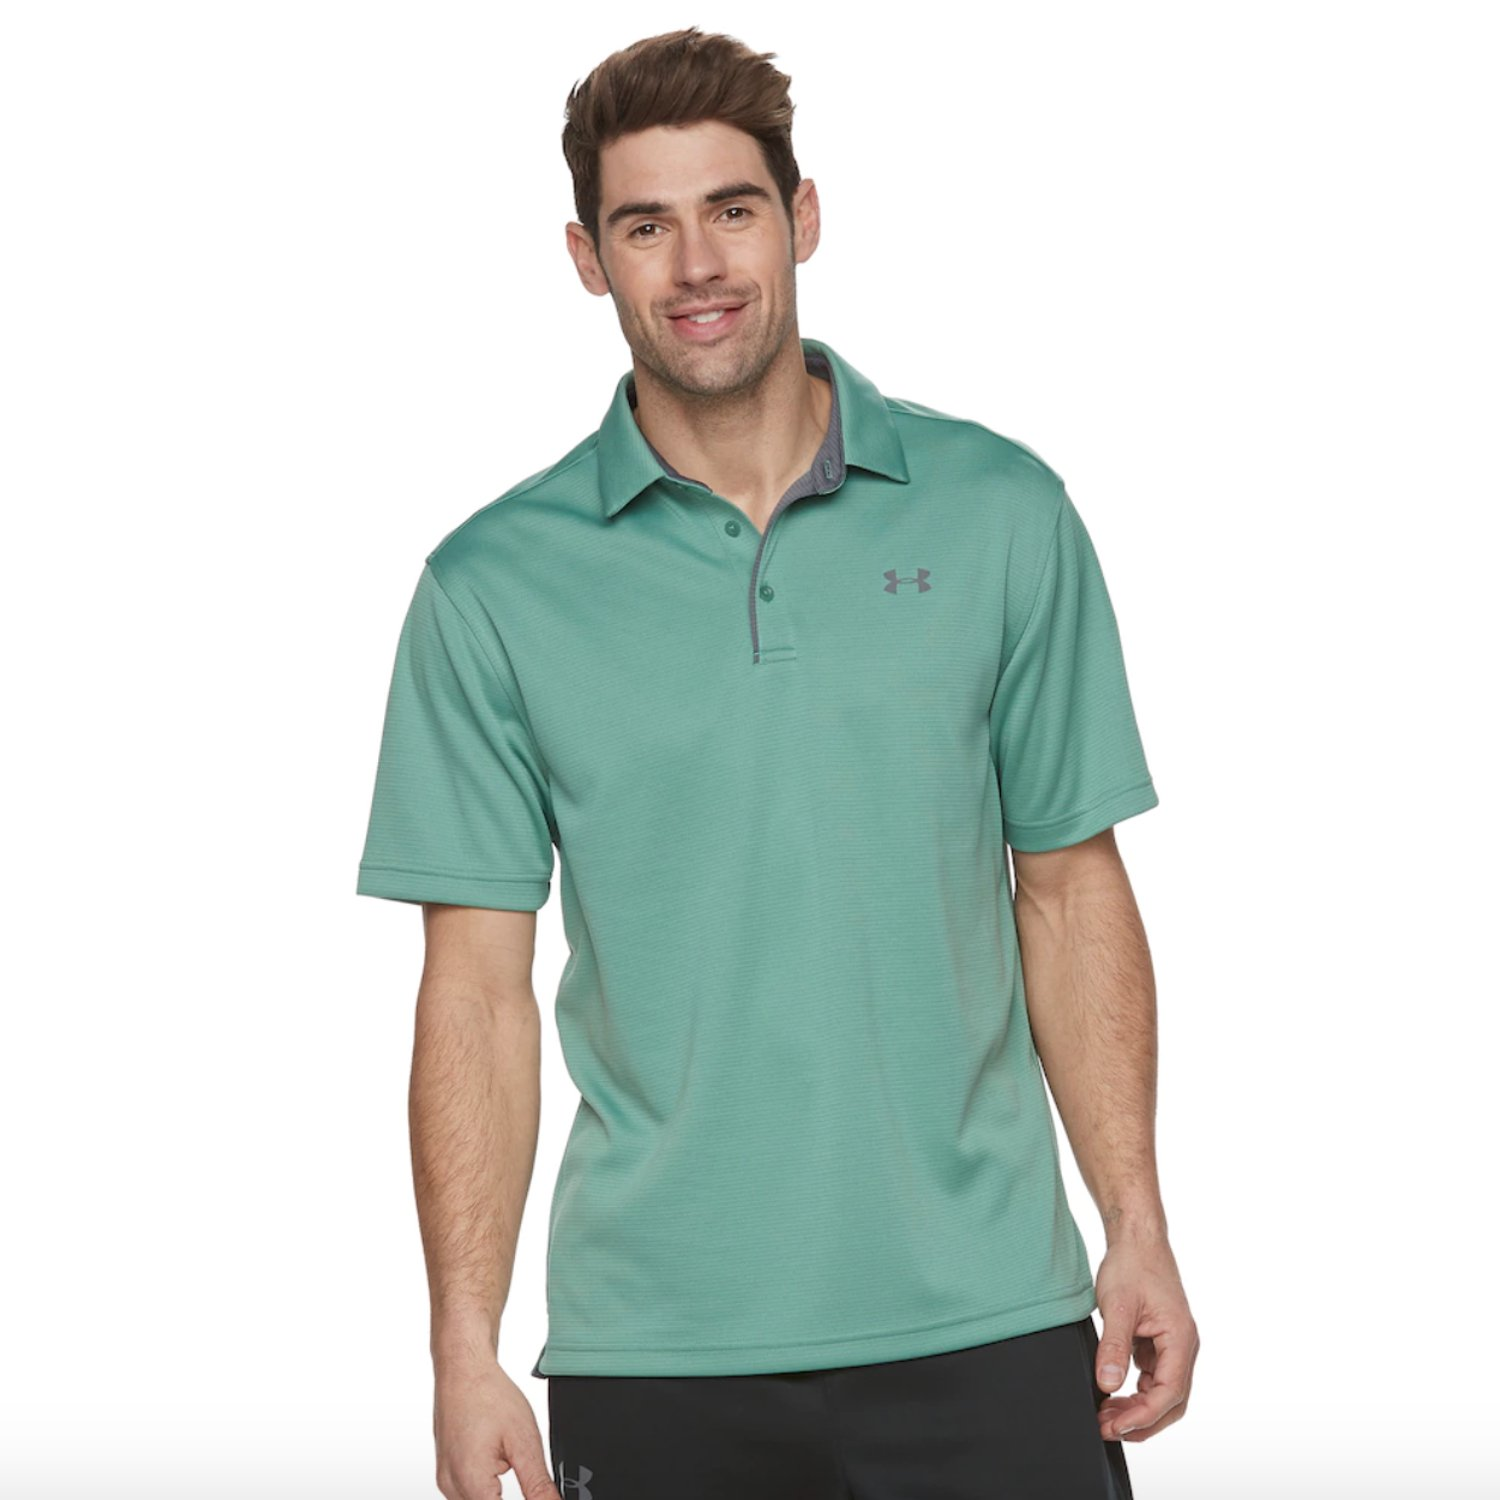 Under Armour Men's Tech Polo (Small, Aegean Green/Graphite)